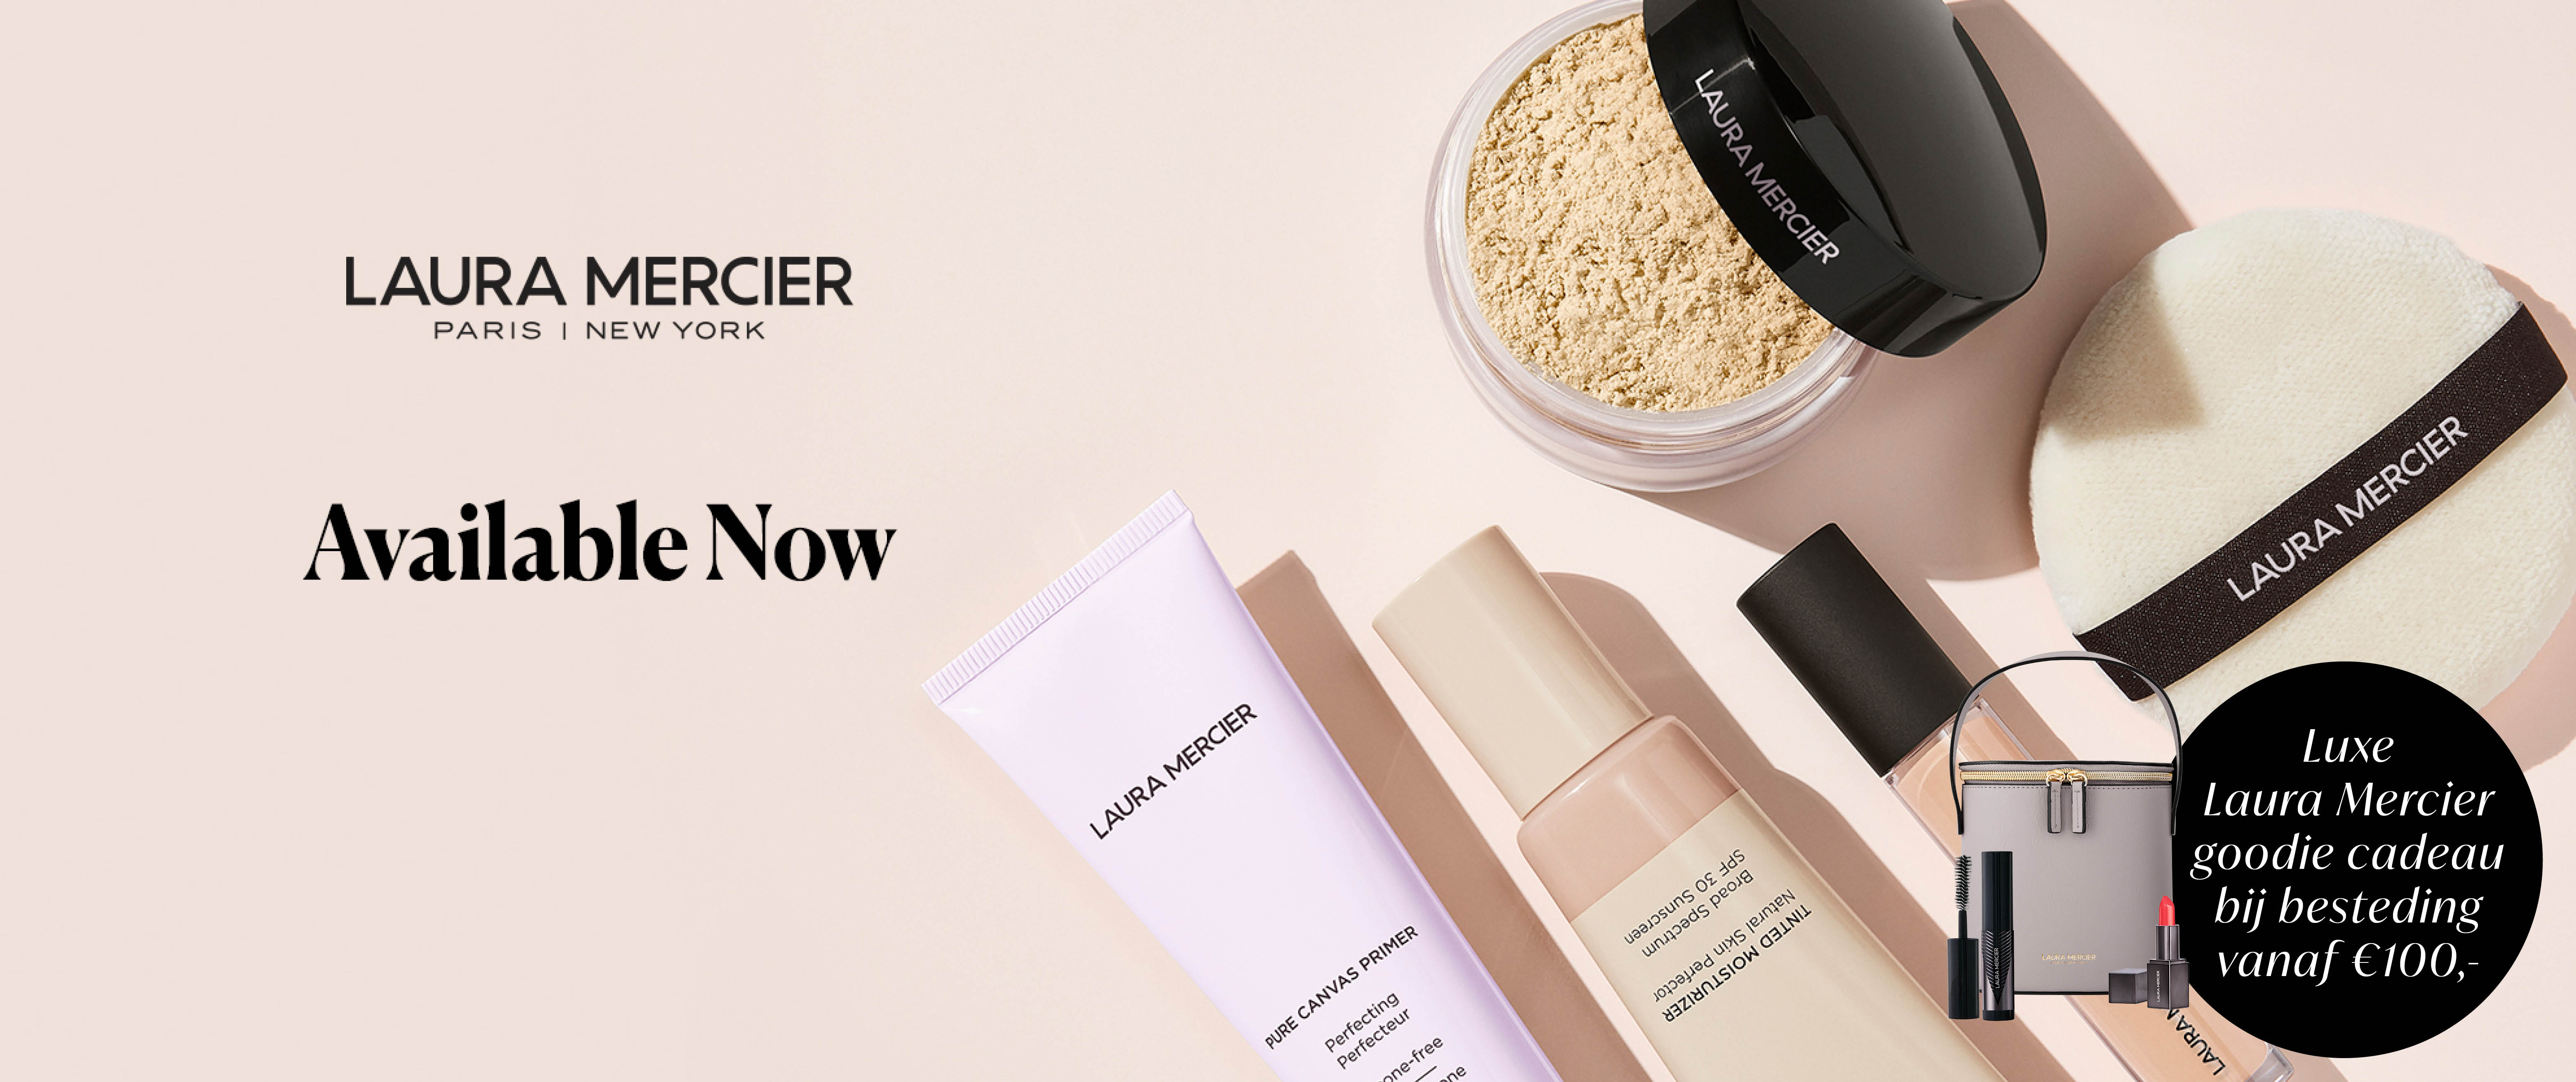 Laura mercier Live